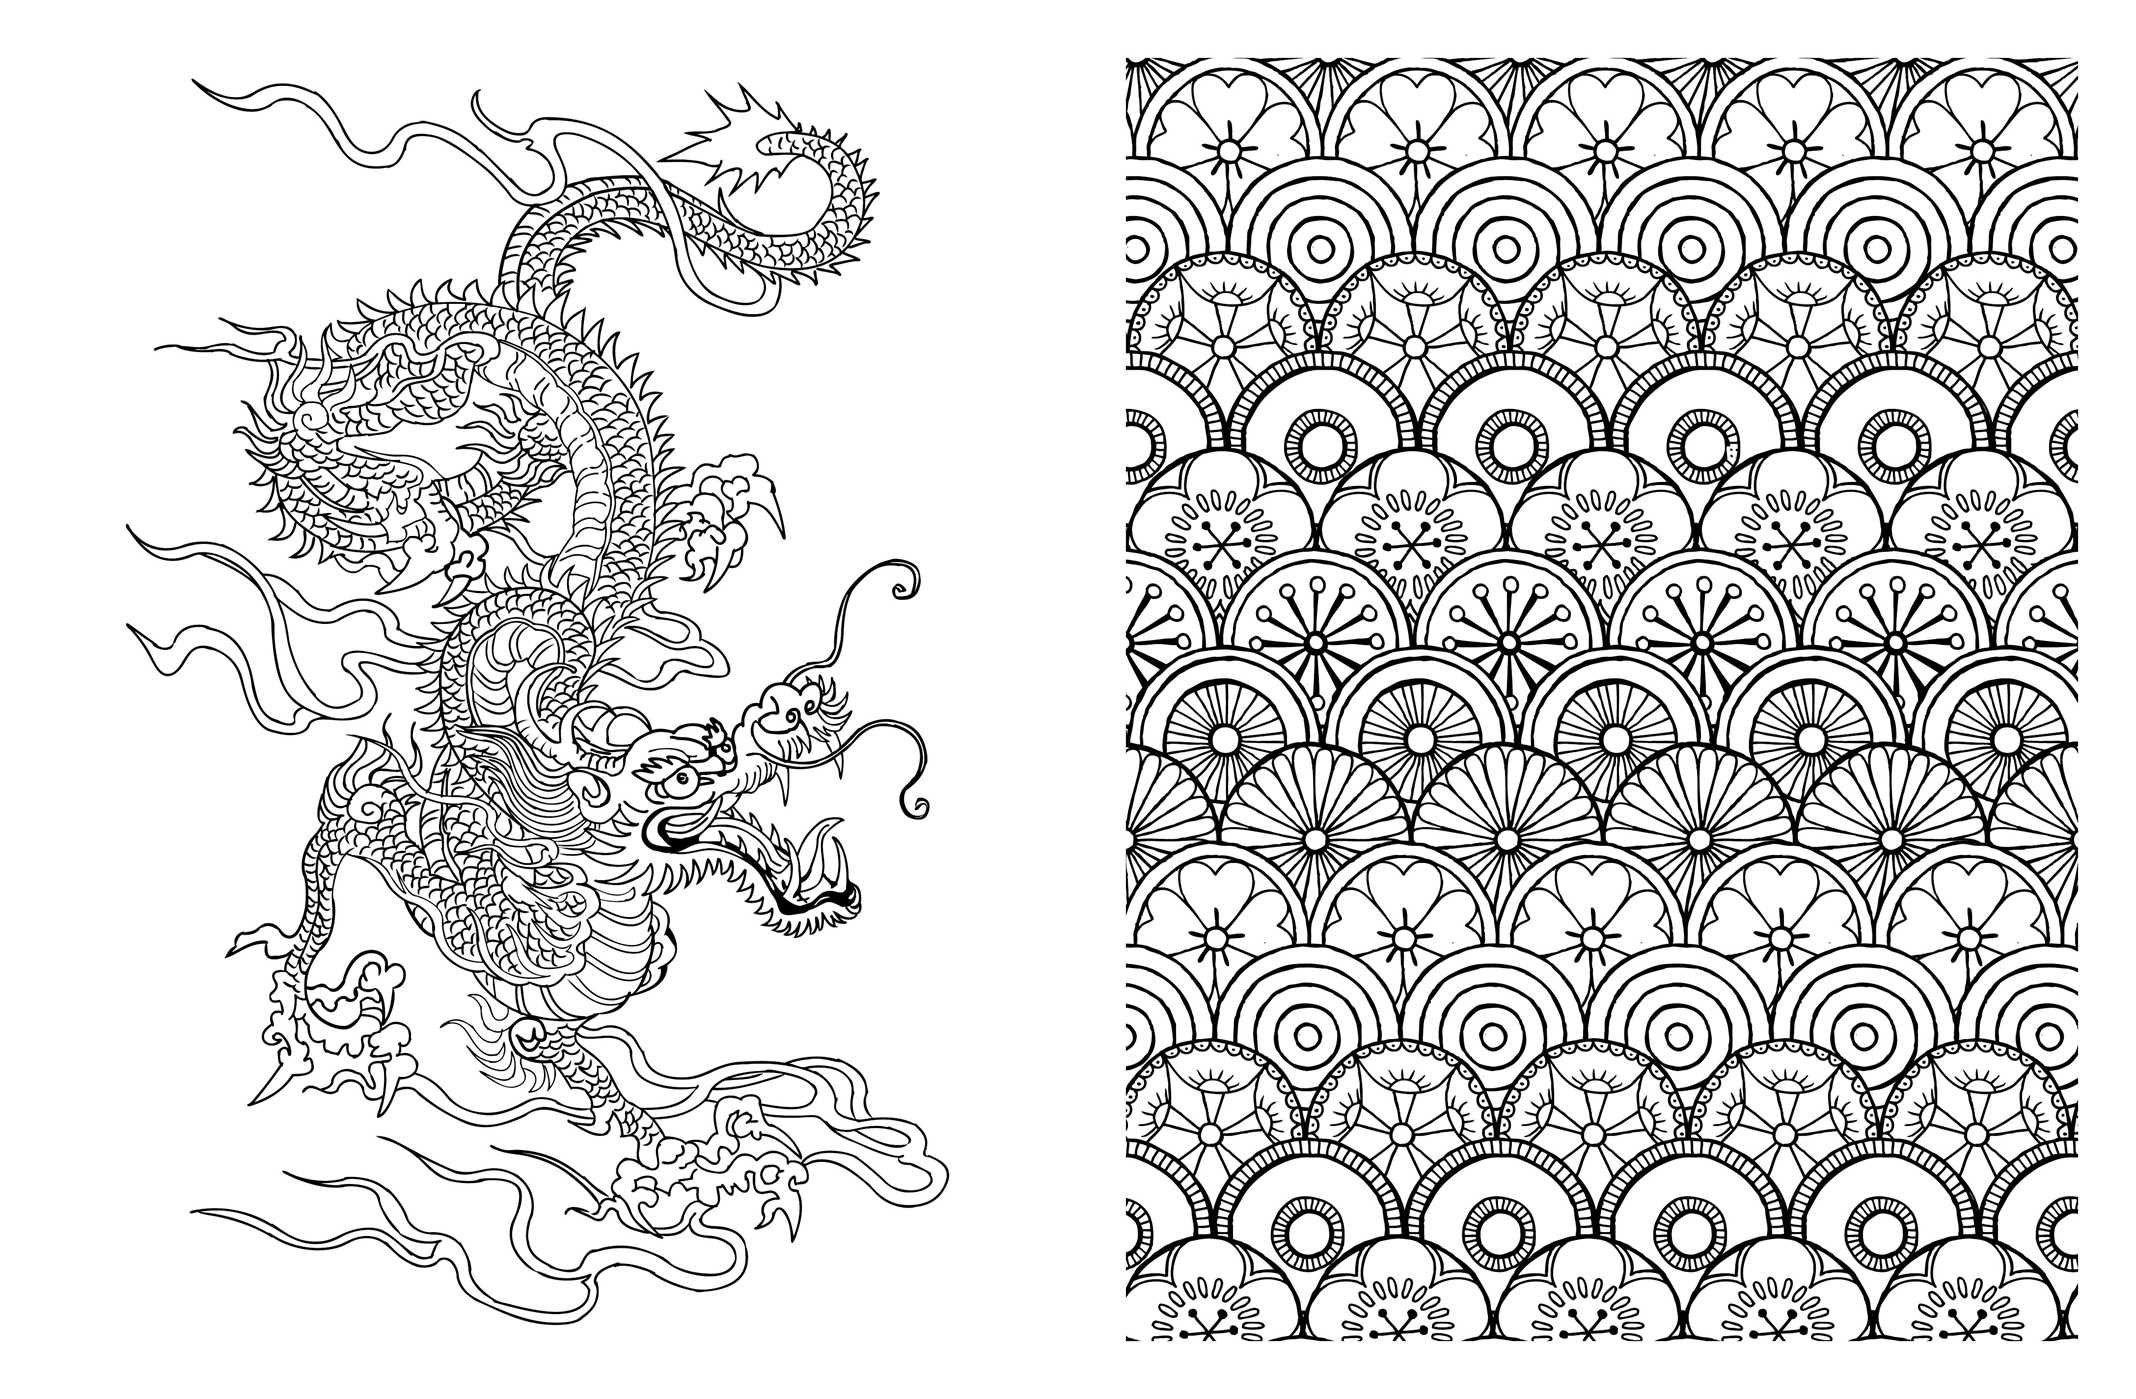 Amazon.com: Posh Adult Coloring Book: Japanese Designs for Fun and ...